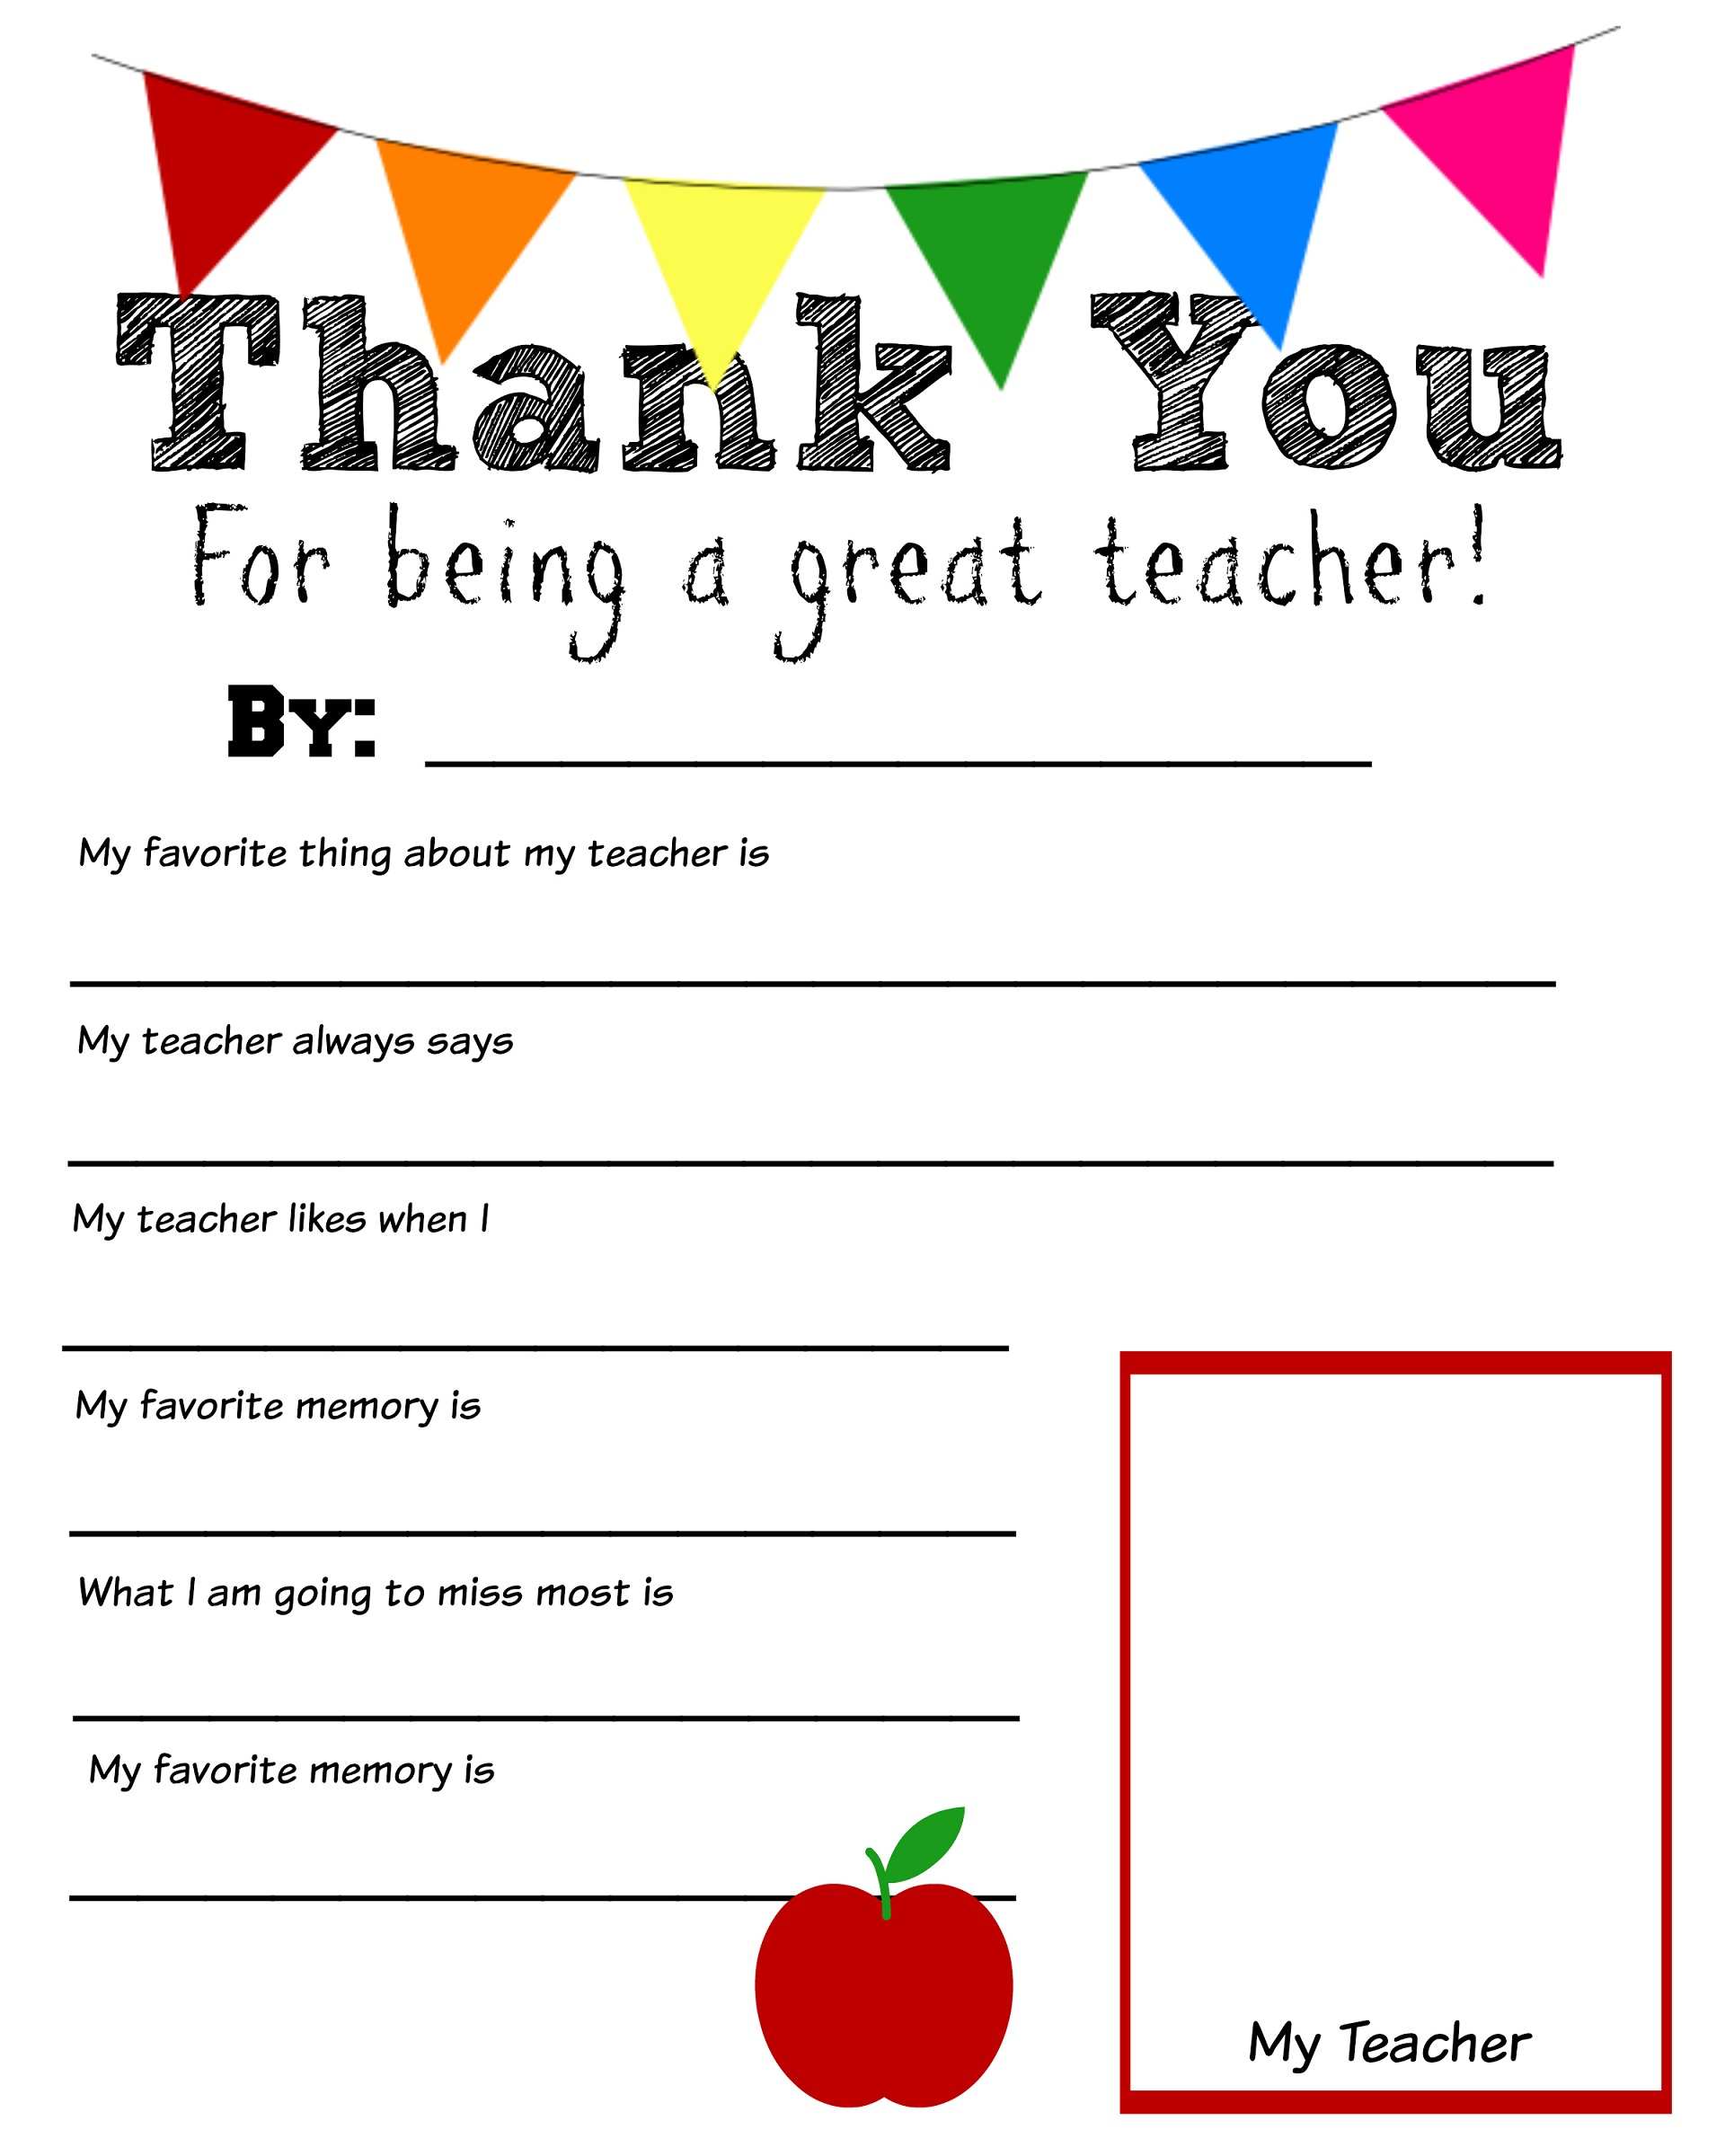 Free Printables for Teachers | Activity Shelter